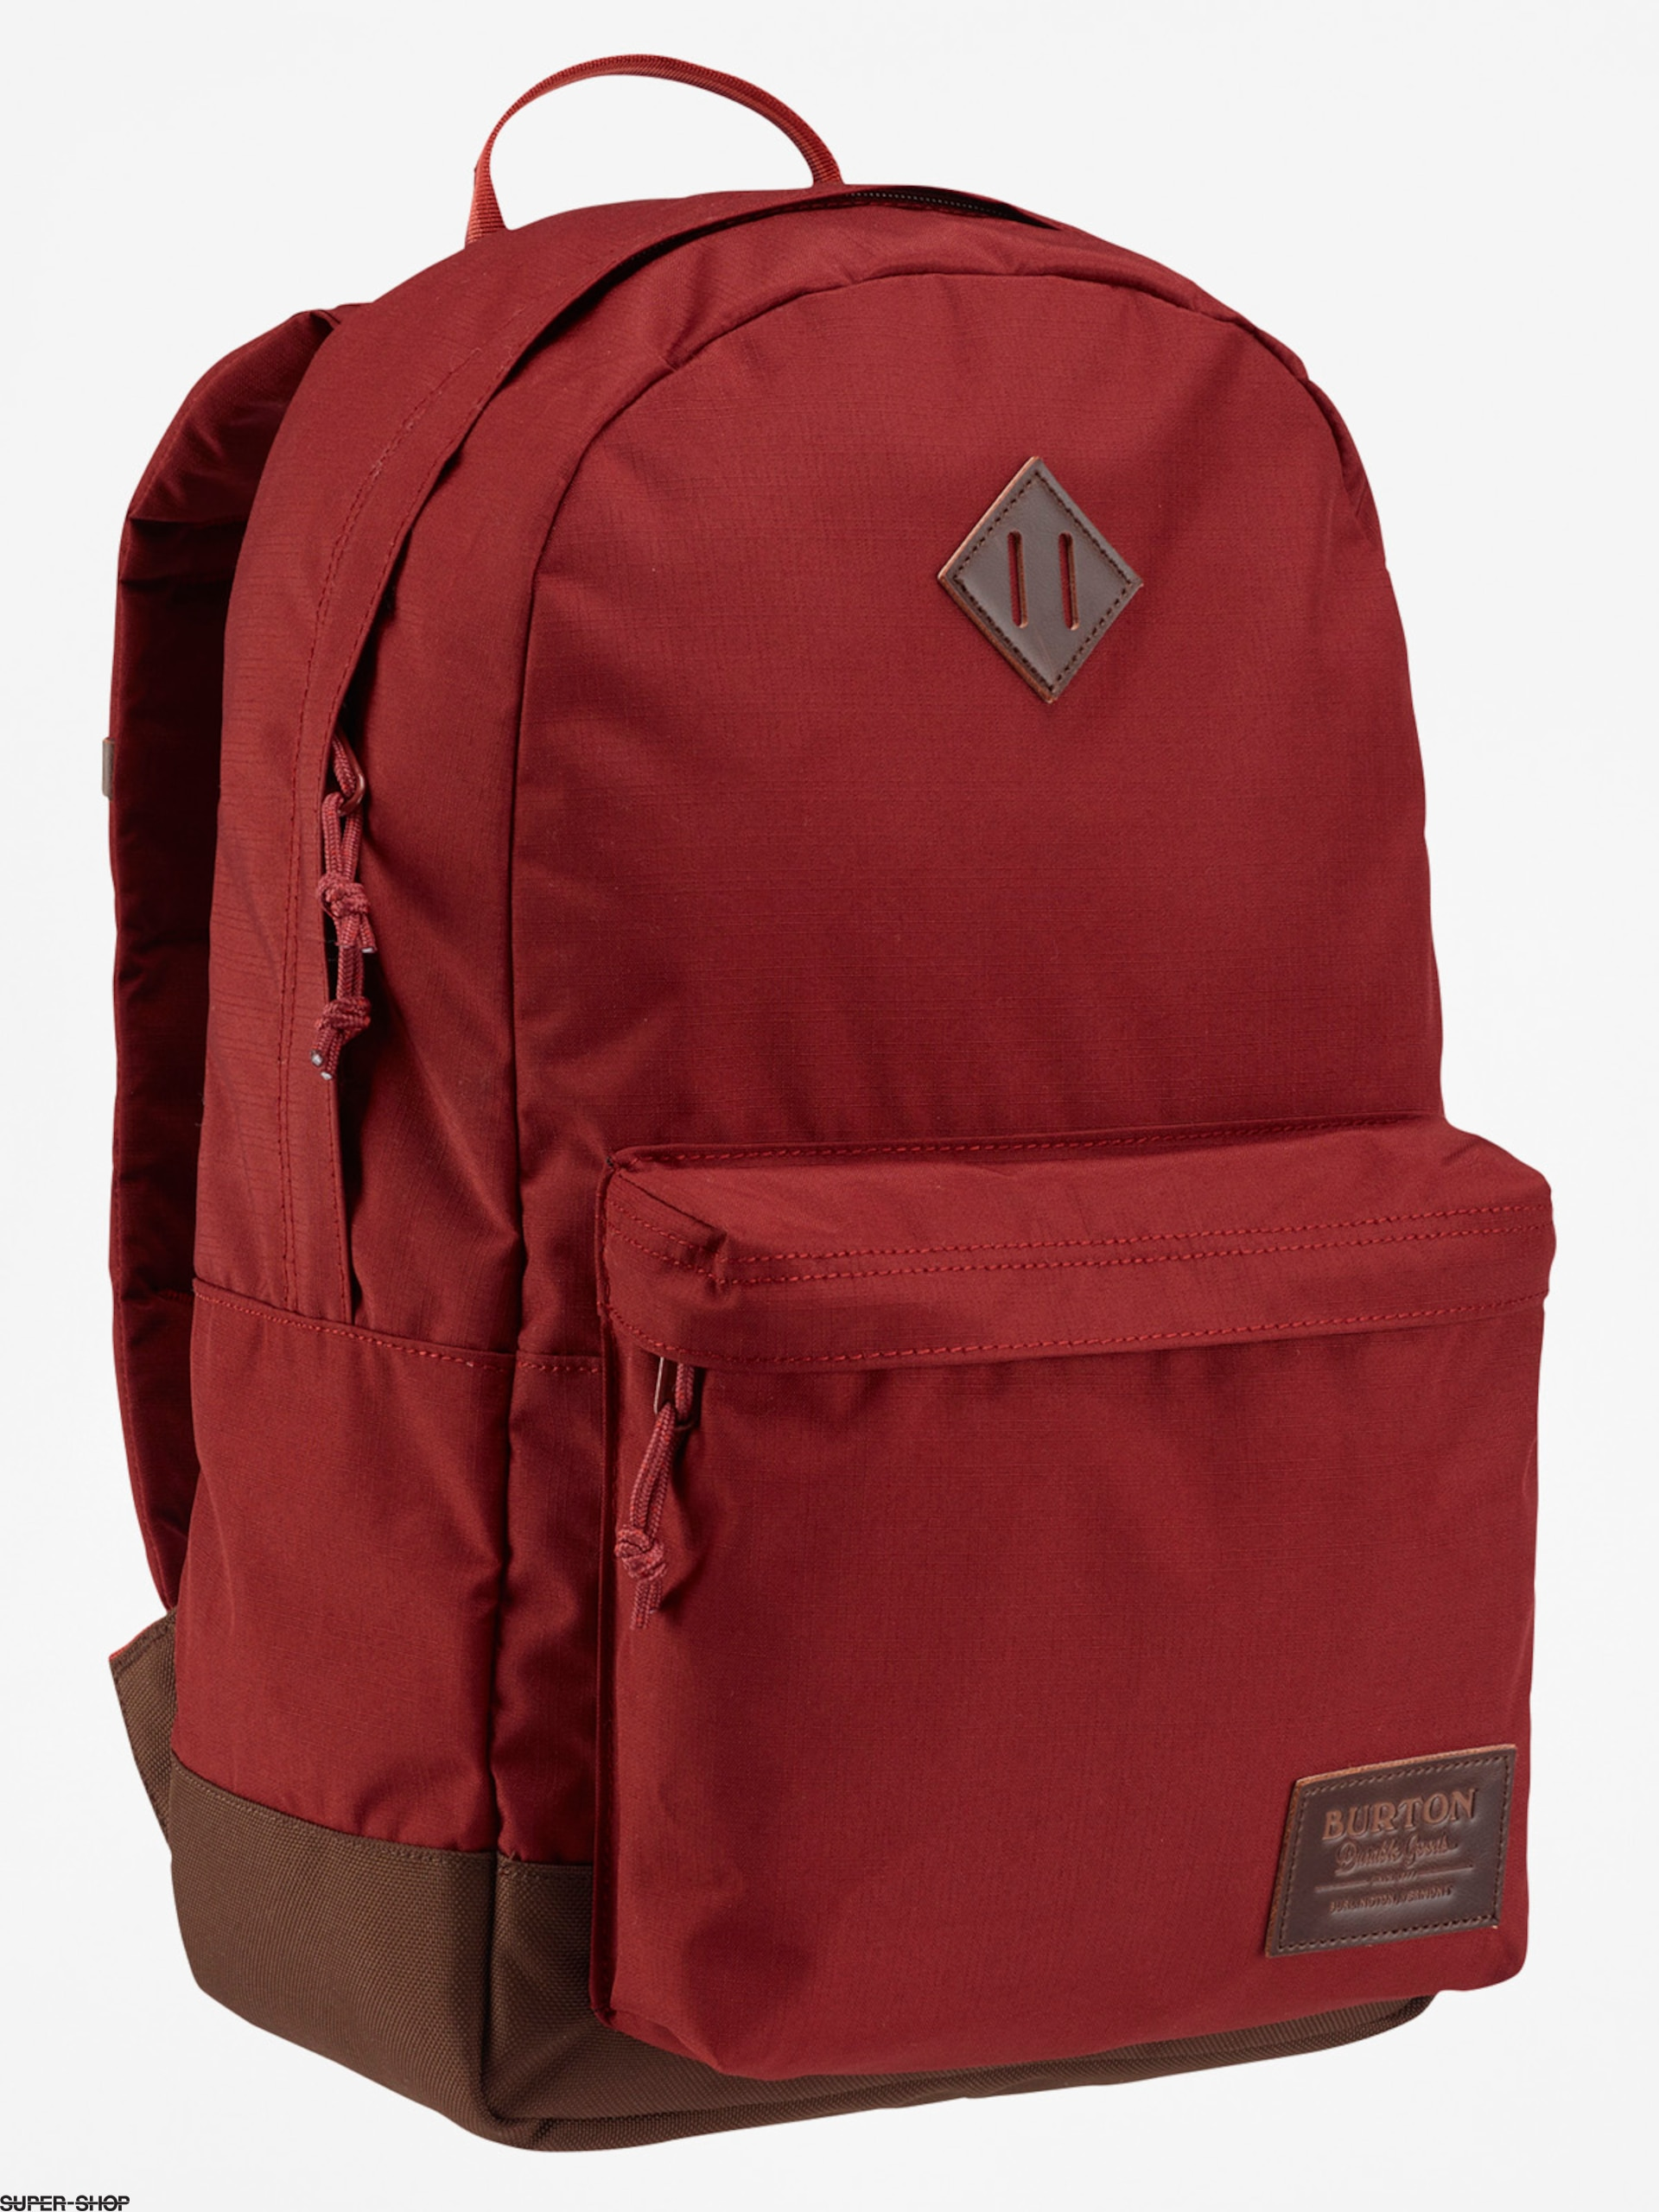 Burton Backpack Kettle (fired brck rip crdra)